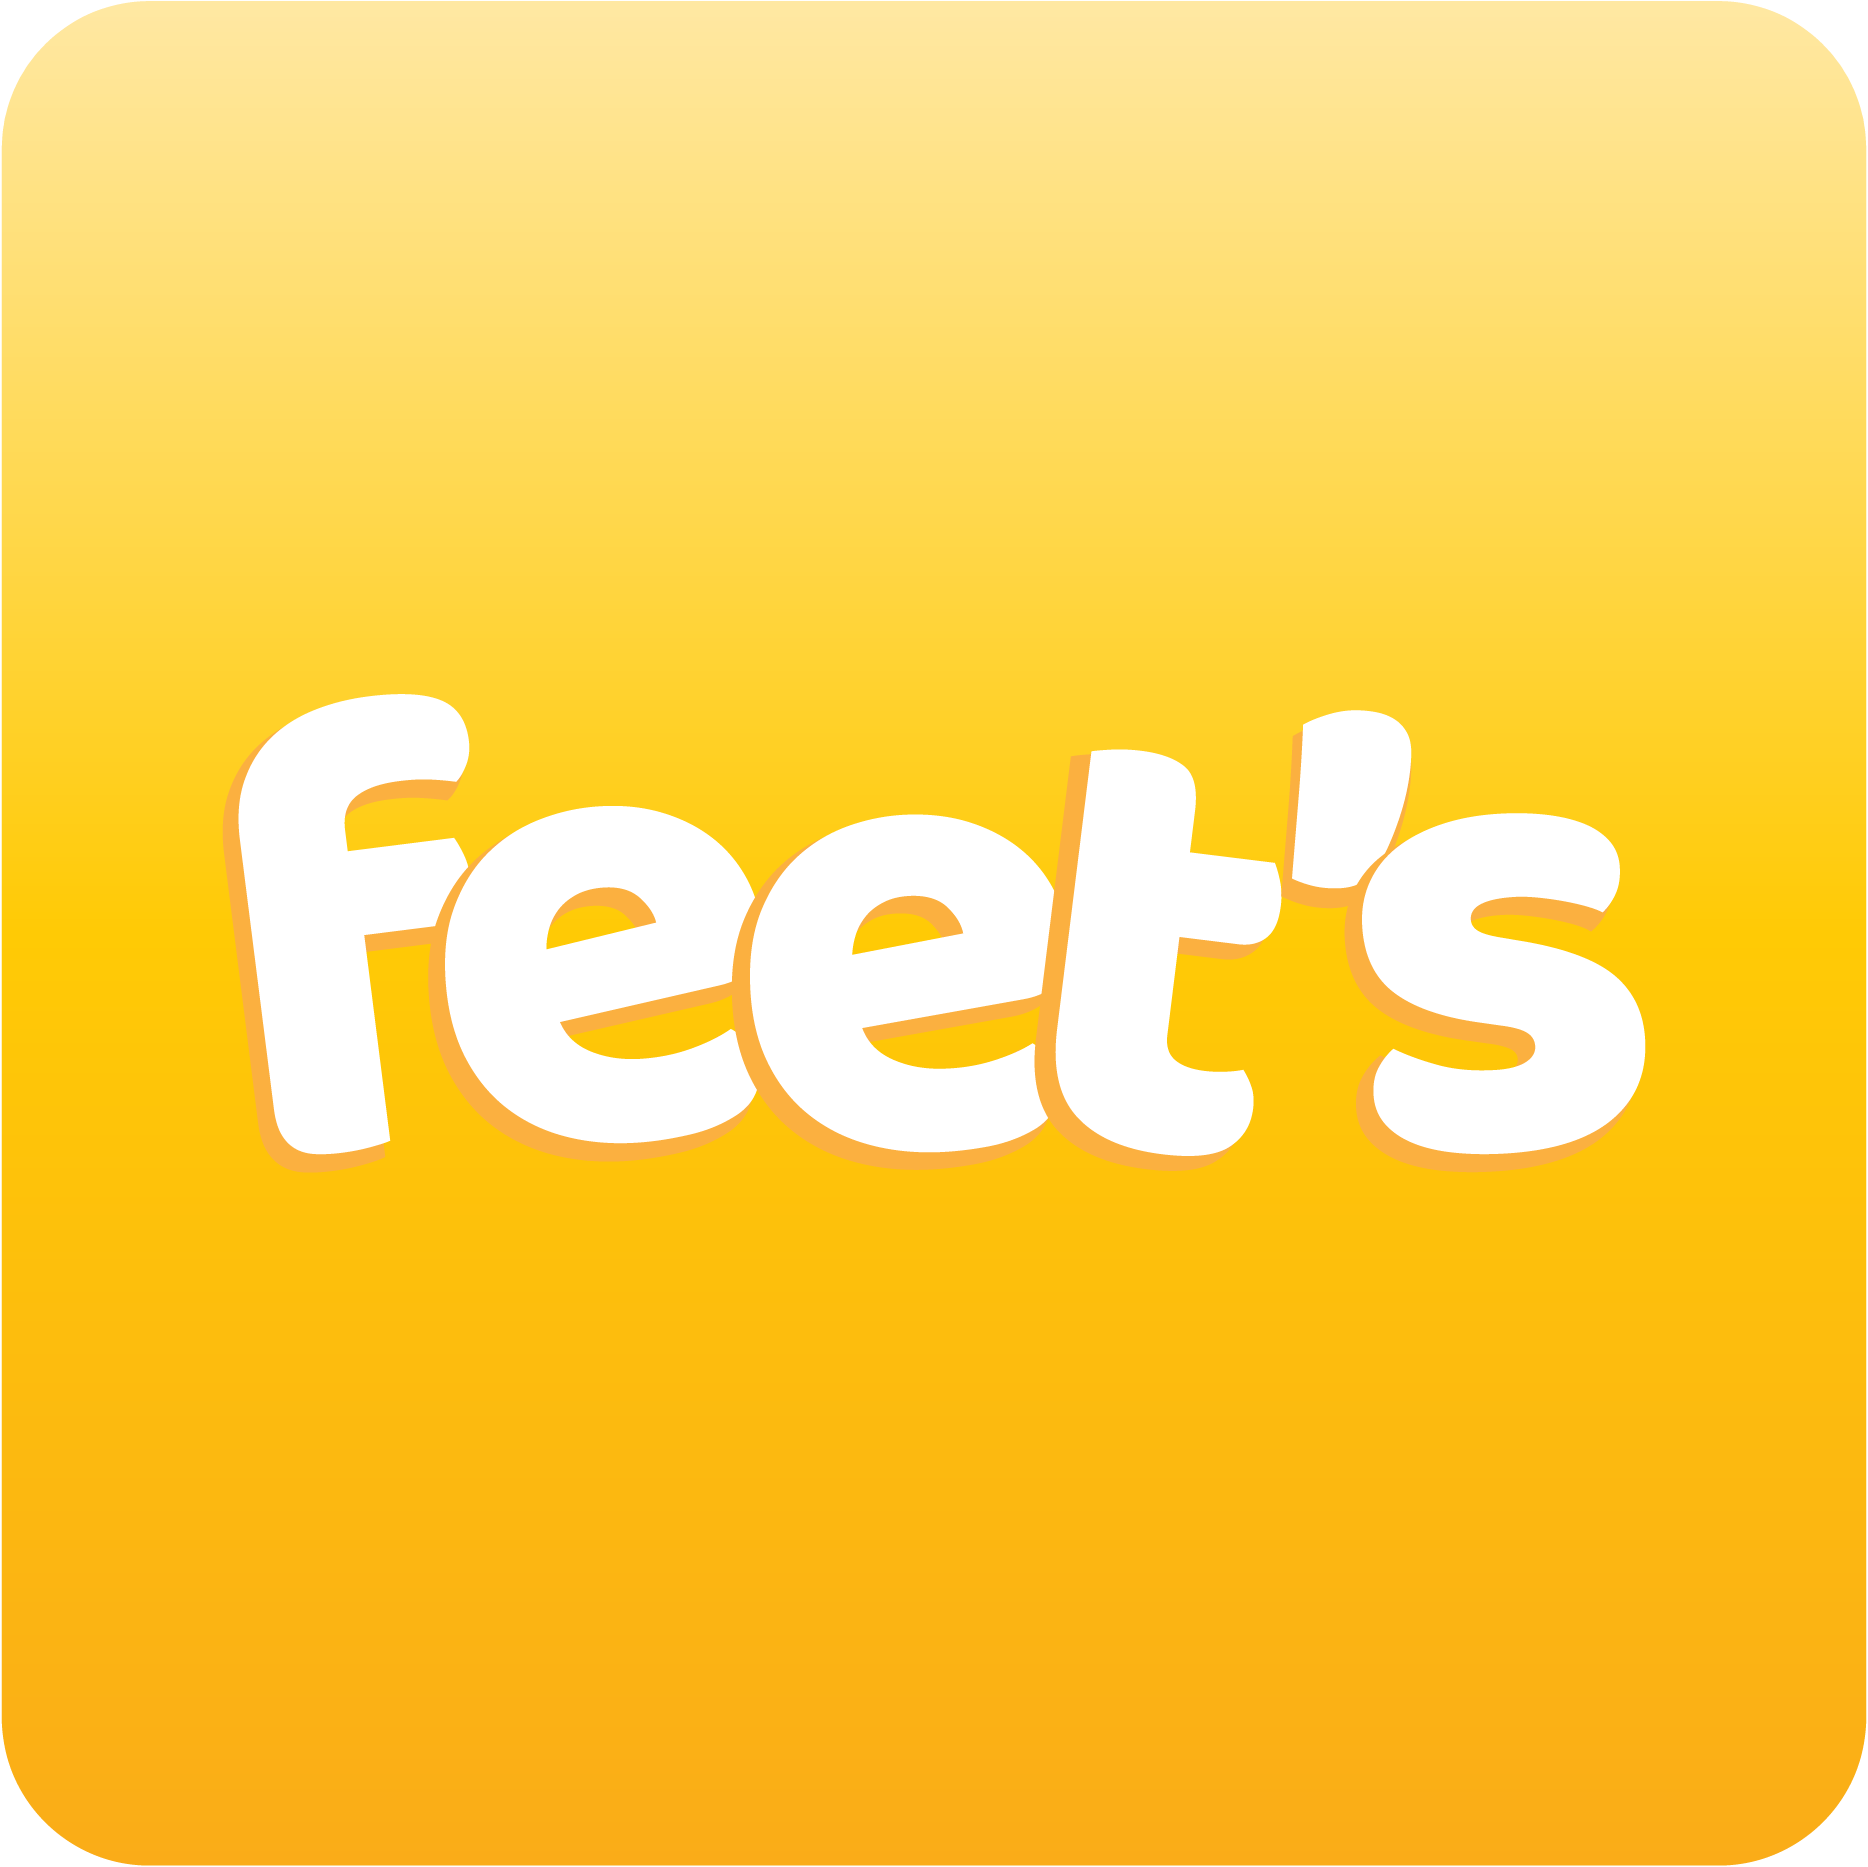 feets-icon_ic_material_product_icon_192px copy